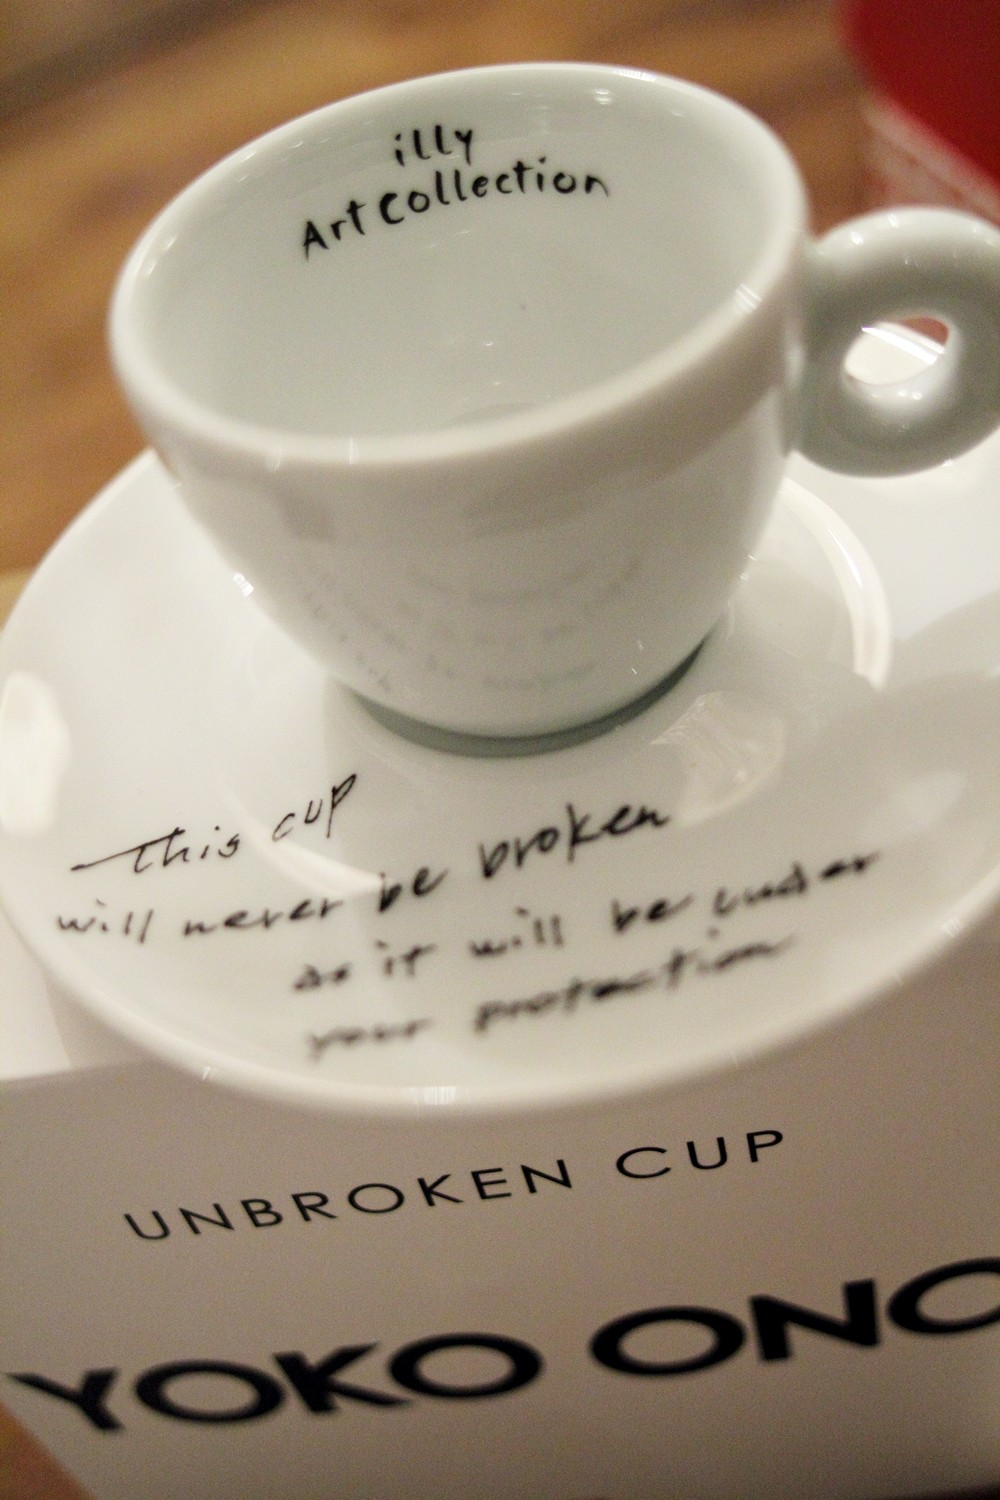 illycaffee Art Collection Yoko Ono Mended Cups